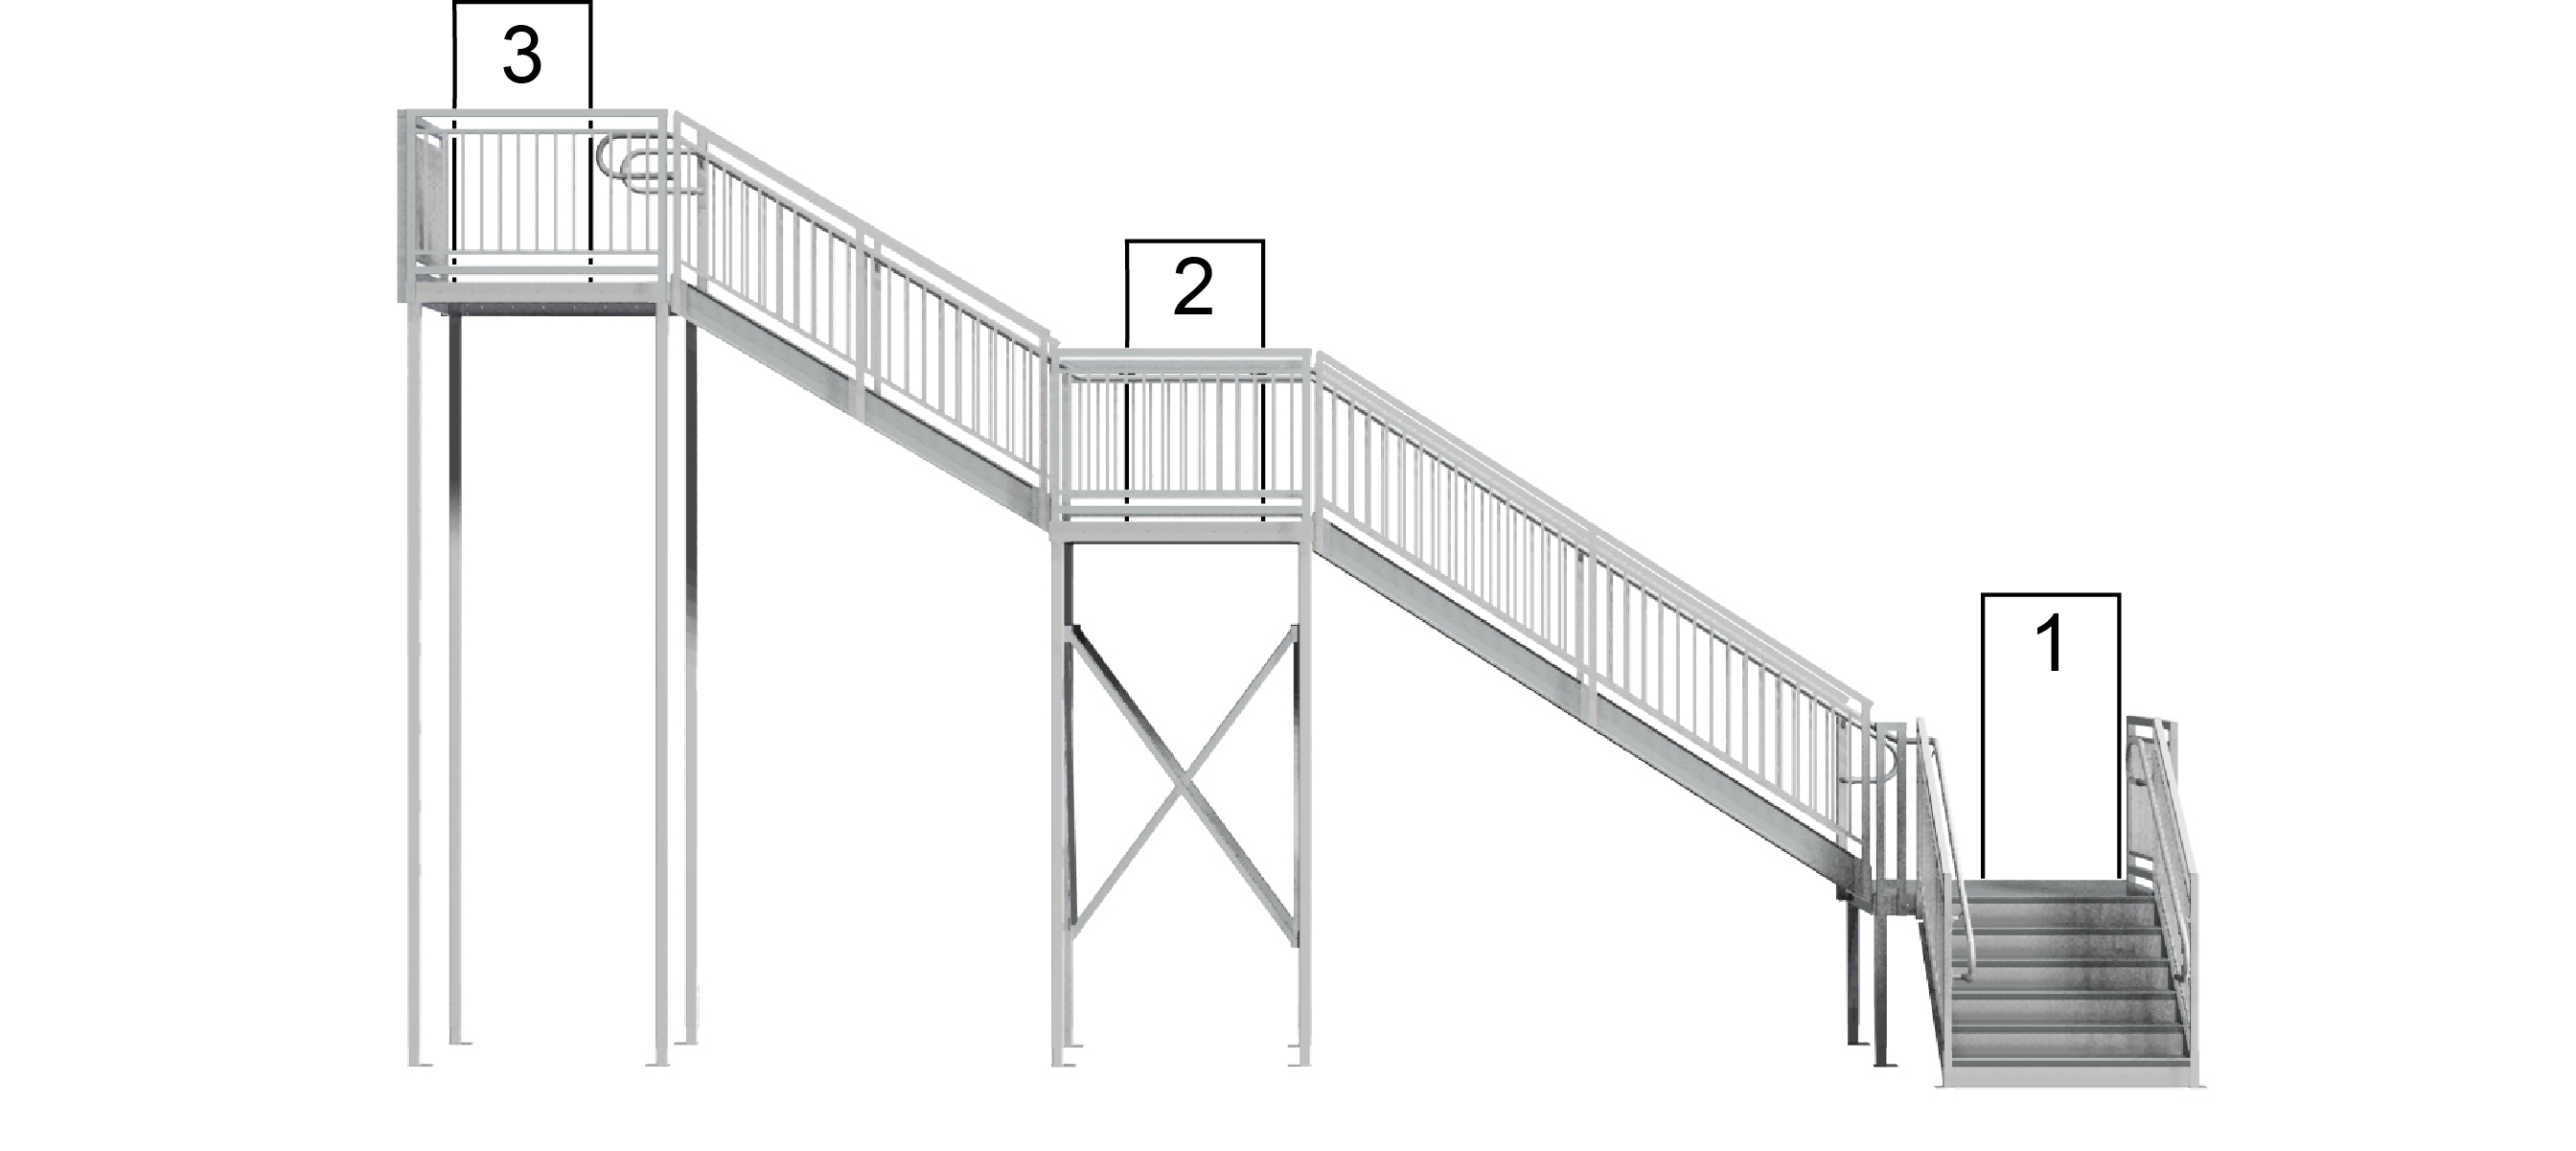 multi-story stairway width calculation